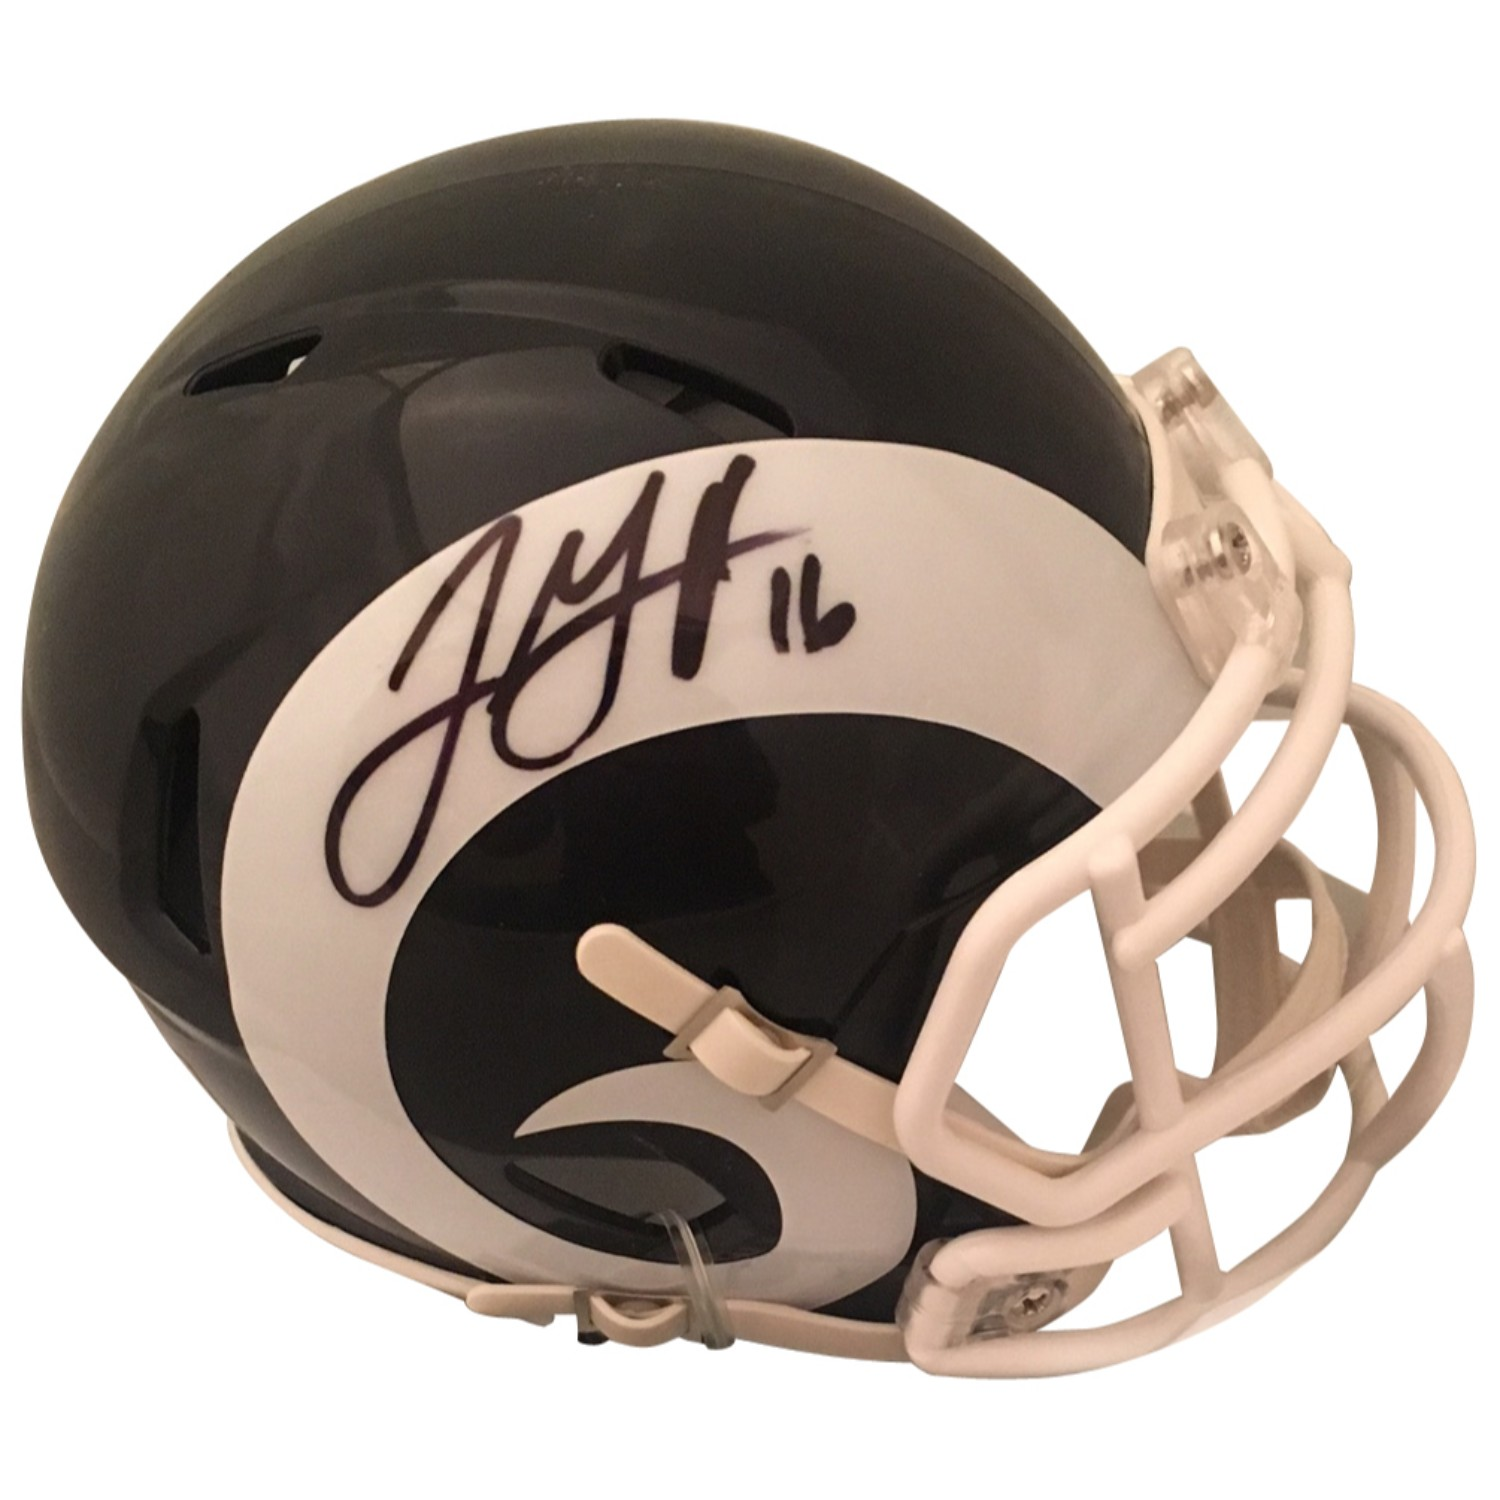 Jared Goff Autographed Los Angeles Rams Signed Football Mini Helmet PSA DNA COA 1 Rams superstar Quarterback Jared Goff has signed this officially licensed Los Angeles Rams mini helmet. Autograph is authenticated by PSA/DNA, the world's leading authenticator of sports autographs. Comes with their unique sticker # fixed to the item and verified on their website. Also, comes with their certificate of authenticity with same matching #.